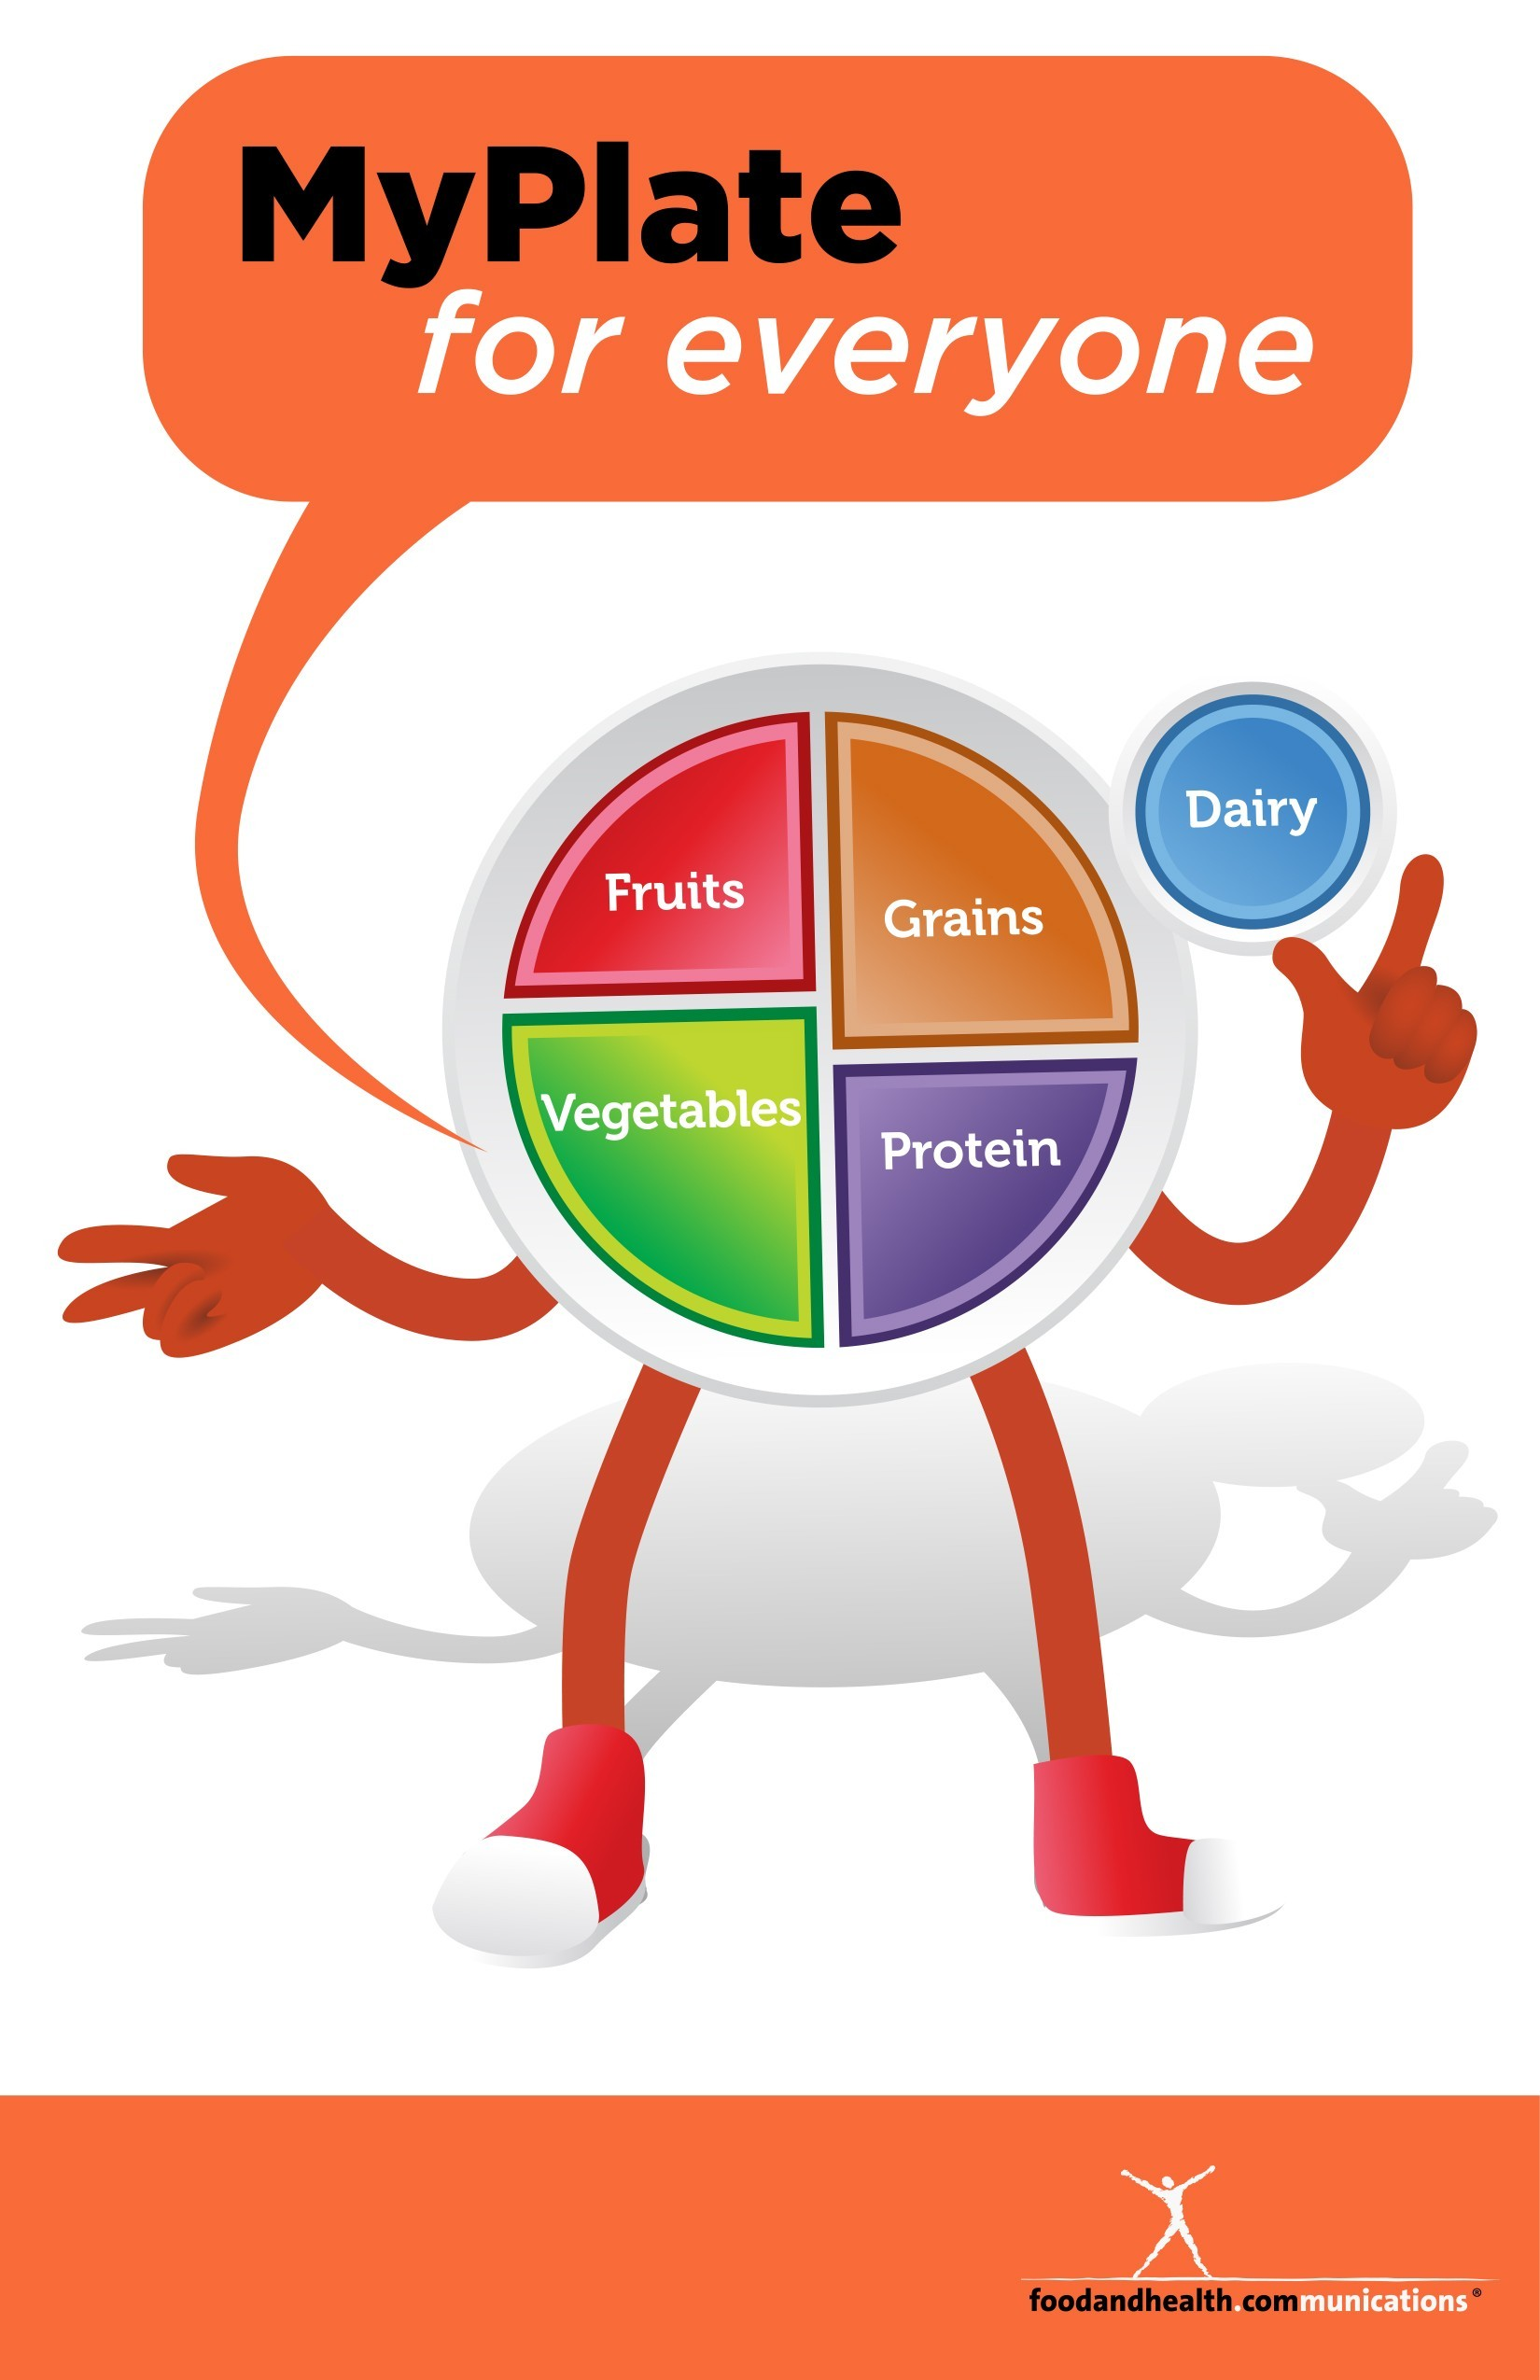 My plate diagram pdf new wiring diagram 2018 get your copy of the free ebook myplate for everyone food and choose myplate plate myplate pdf hand out myplate ada pdf on my plate diagram pdf pooptronica